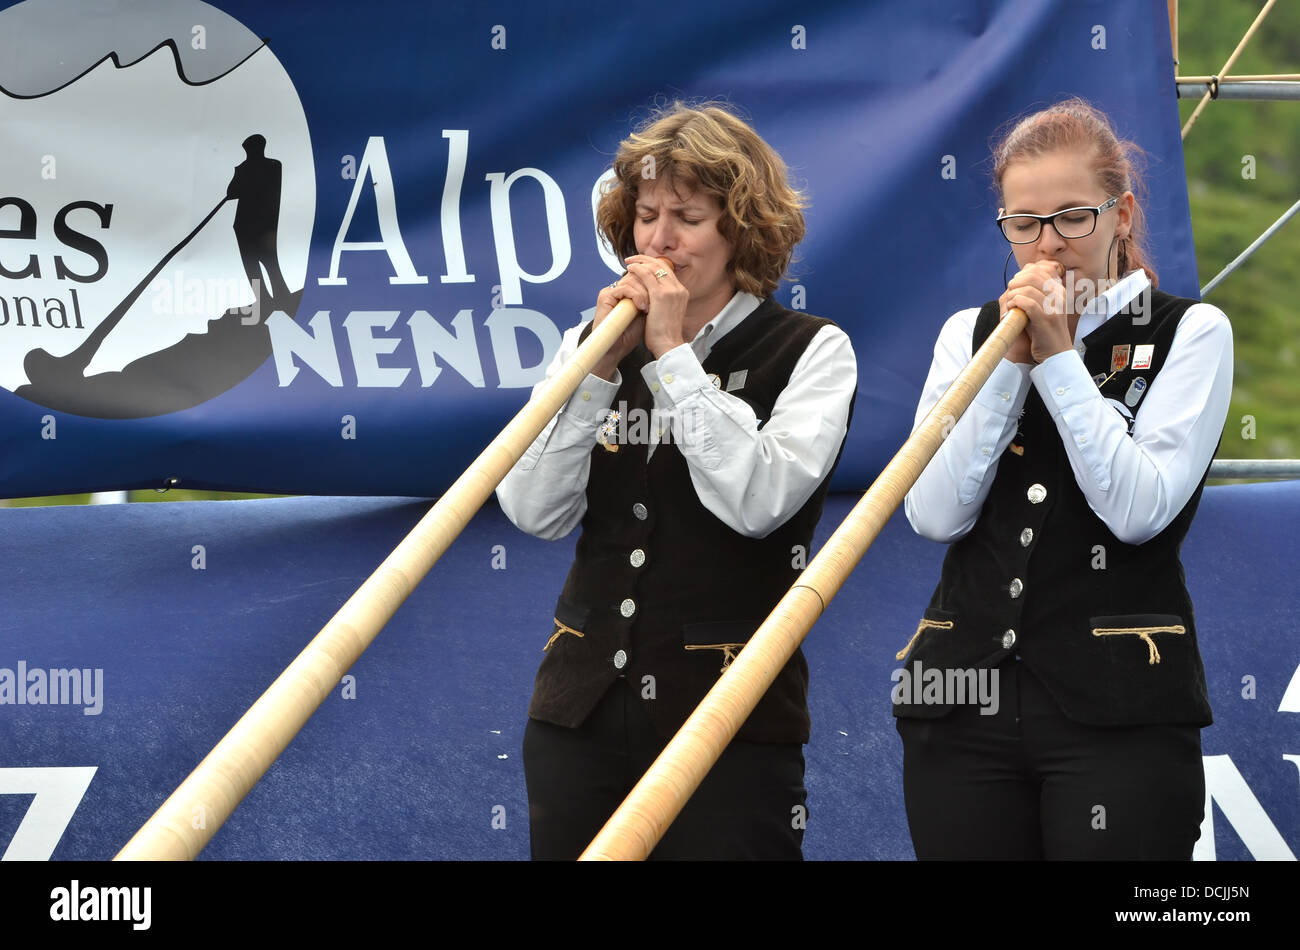 Duo Patricia and Nathalie MONORY in the finals at the International Alpine Horn Festival: - Stock Image